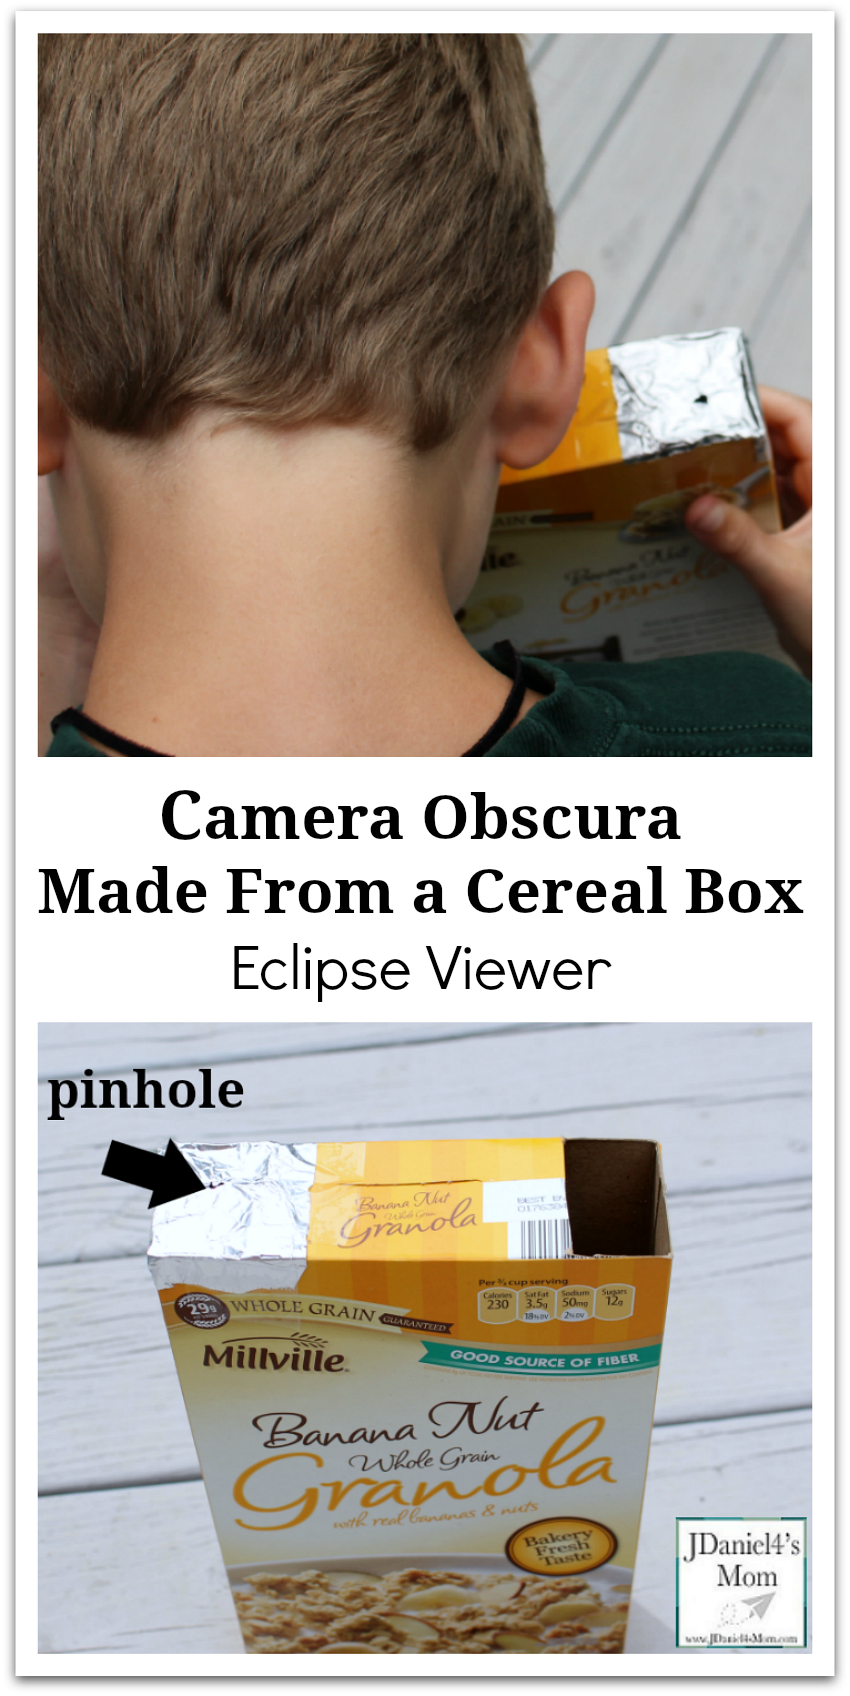 Camera Obscura Made From a Cereal Box - This eclipse viewer is easy to put together. It would be a wonderful STEM experiment for your students at school or your children at home.